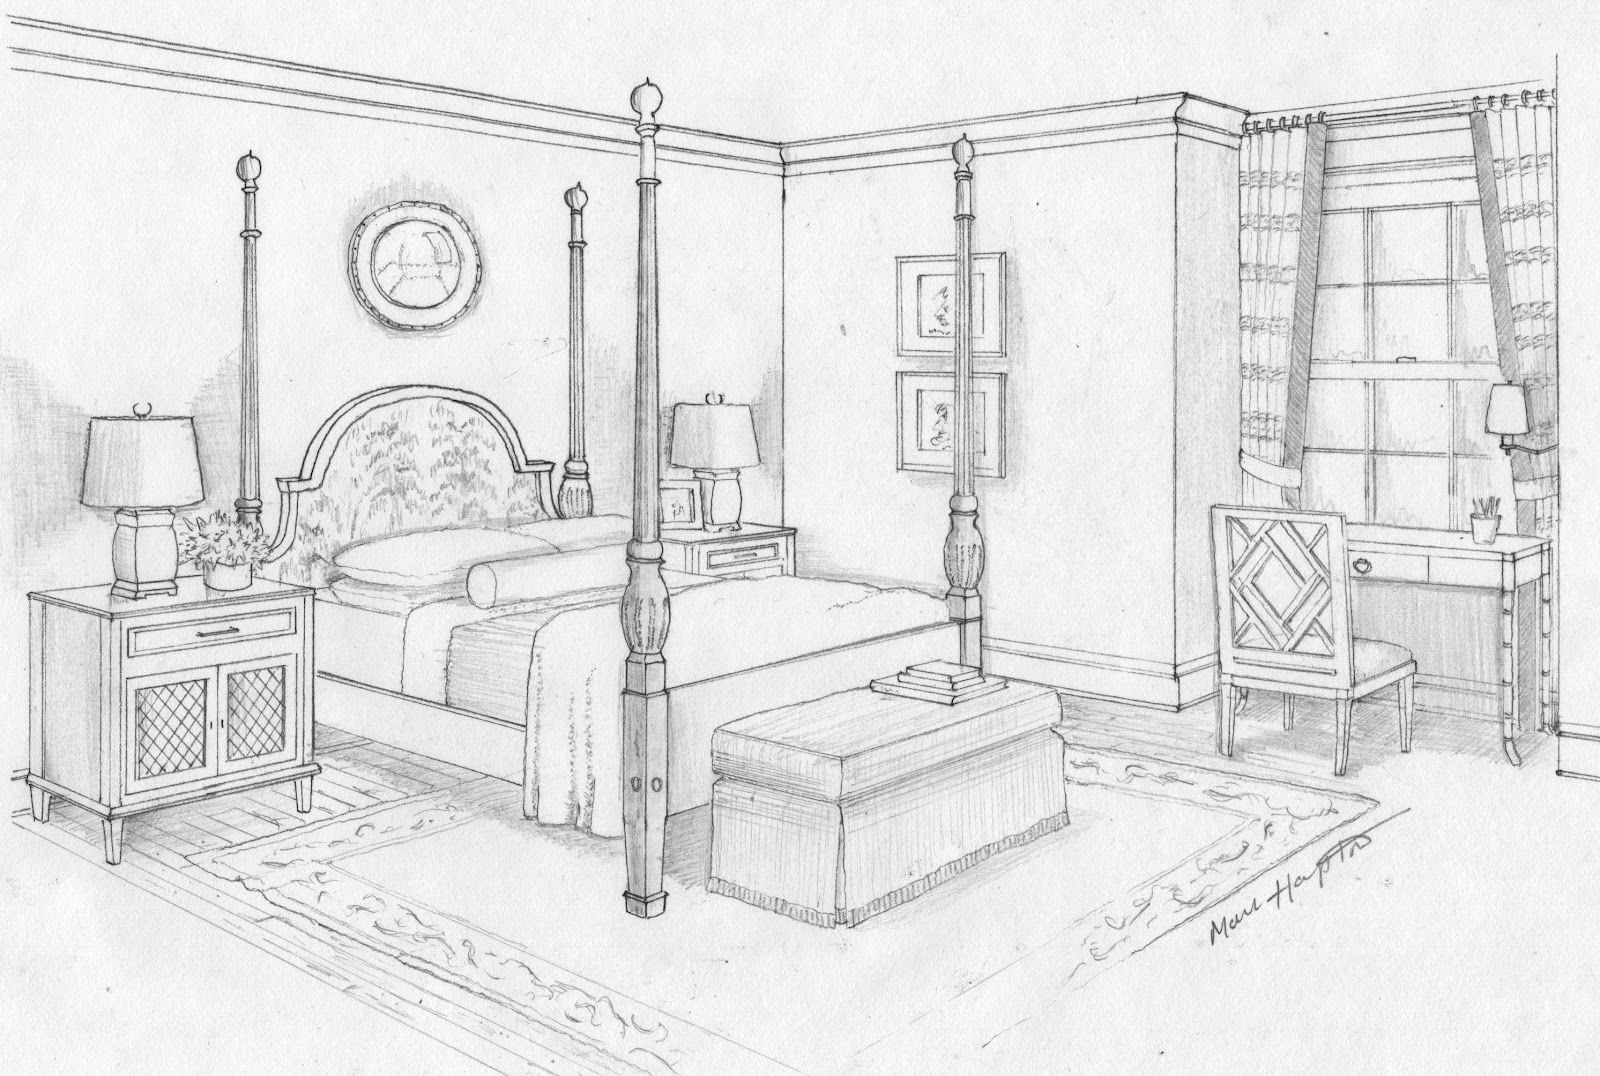 dream bedroom sketch bedroom ideas pictures art drawings sketches bedroom drawing